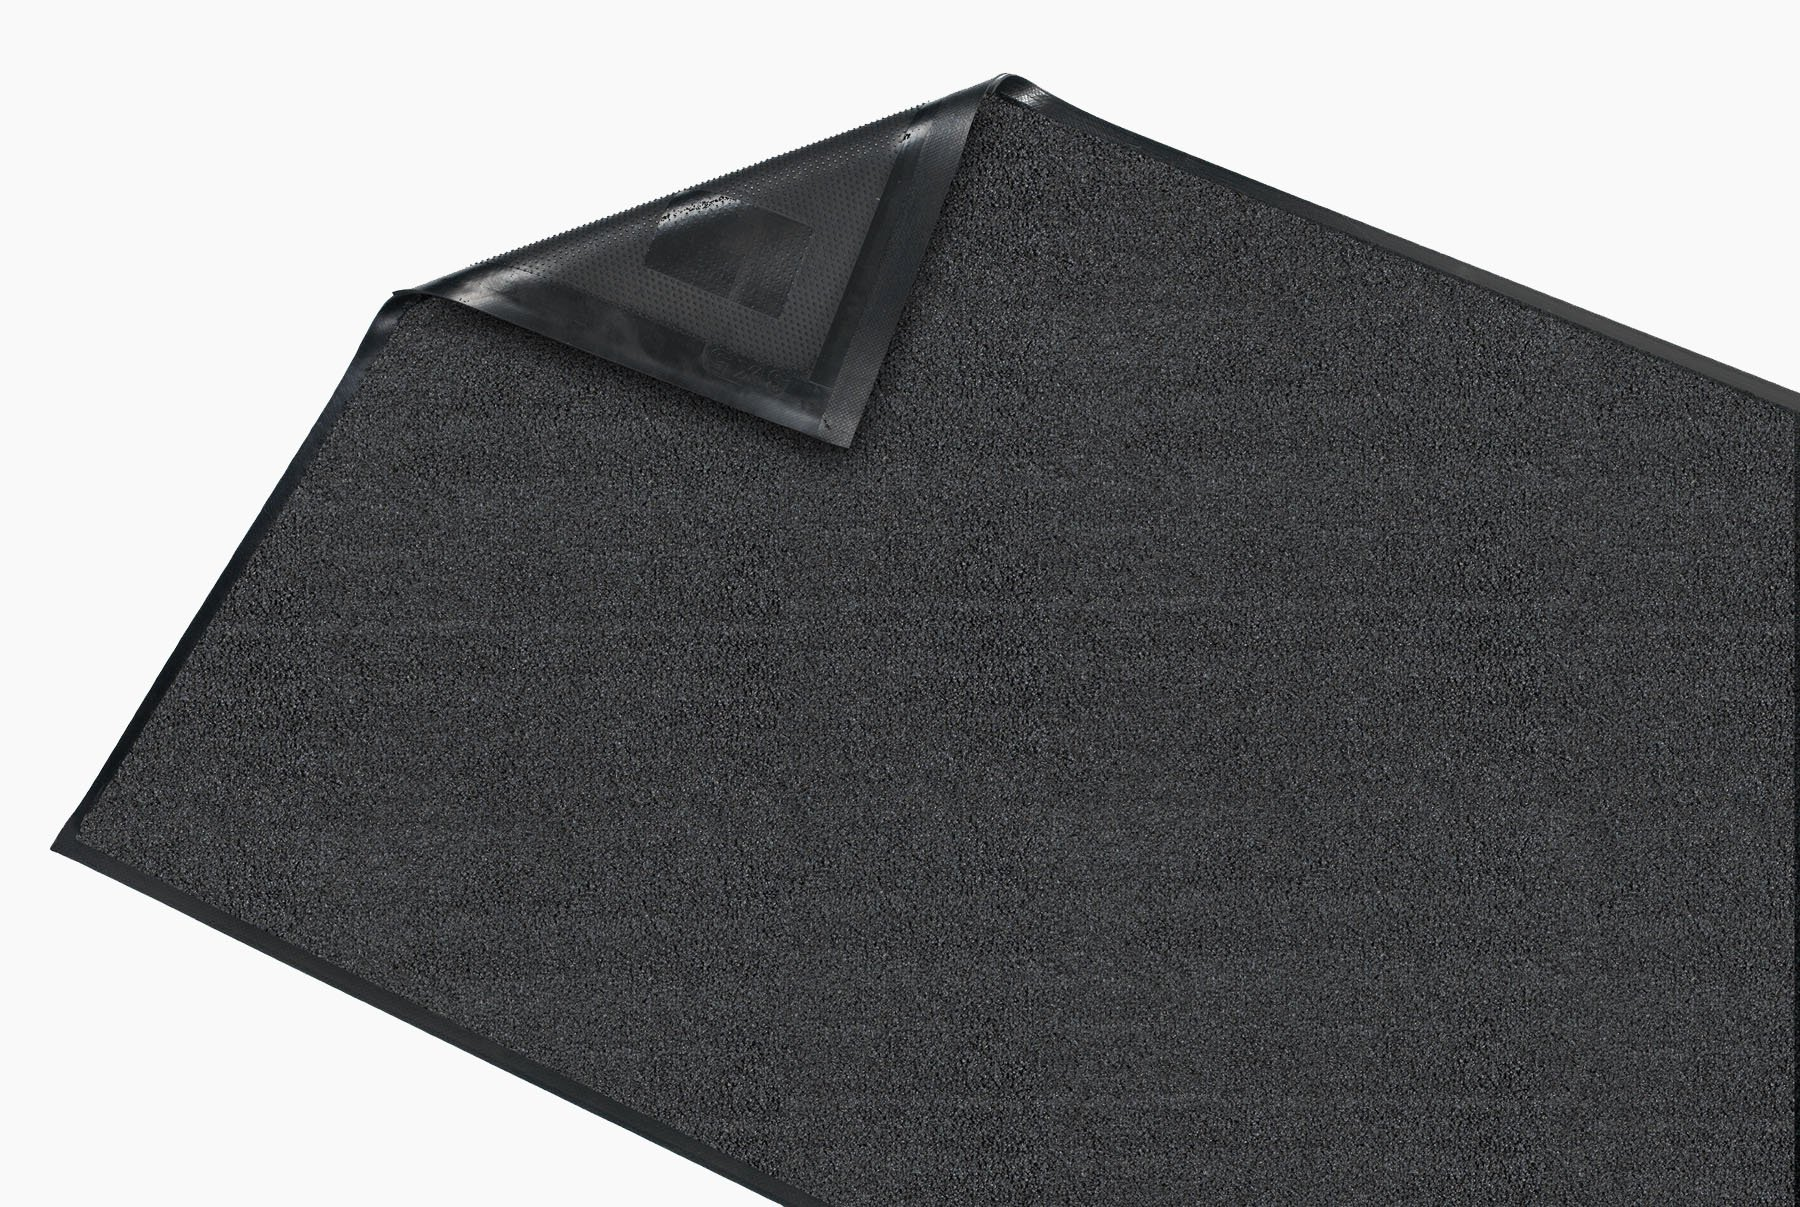 Guardian Platinum Series Indoor Wiper Floor Mat, Rubber with Nylon Carpet, 3'x15', Grey by Guardian (Image #4)